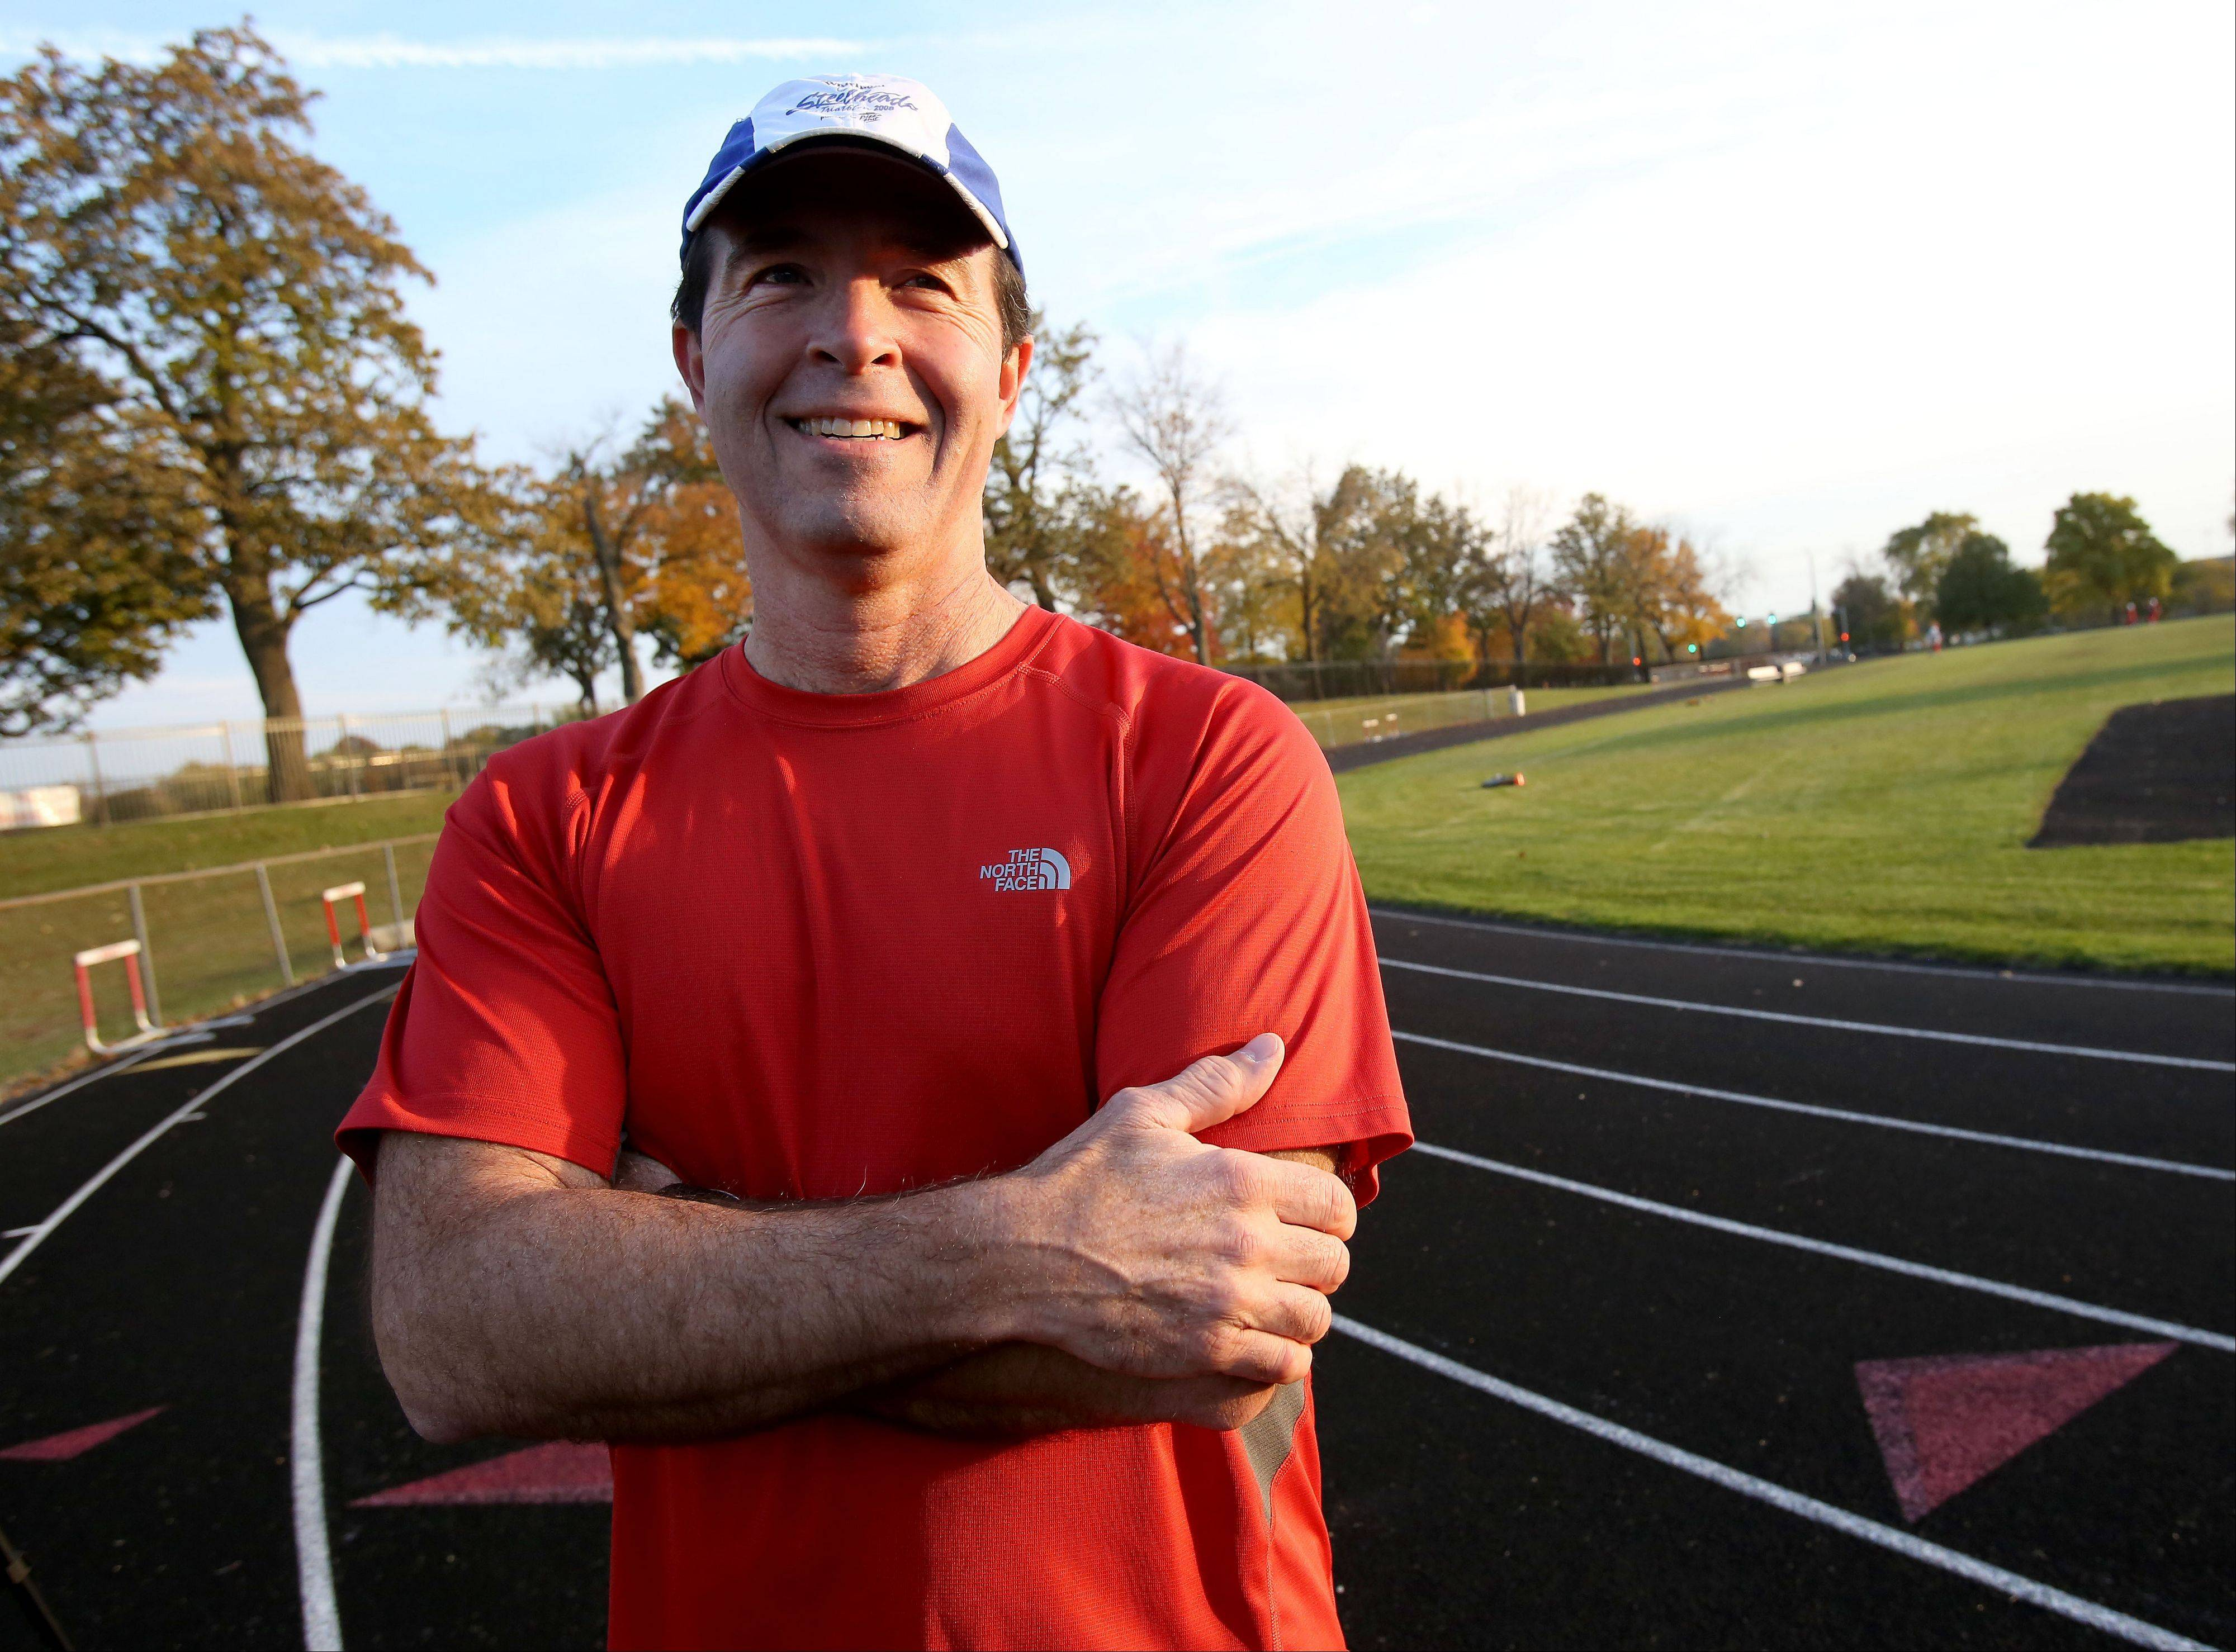 Steve Dobes of Naperville is almost ready to run his first marathon, a racing journey in honor of his brother, Jim, who died in 2009 from ALS. Dobes' first marathon will be the inaugural Edward Hospital Naperville Marathon, which begins at 7 a.m. Sunday.